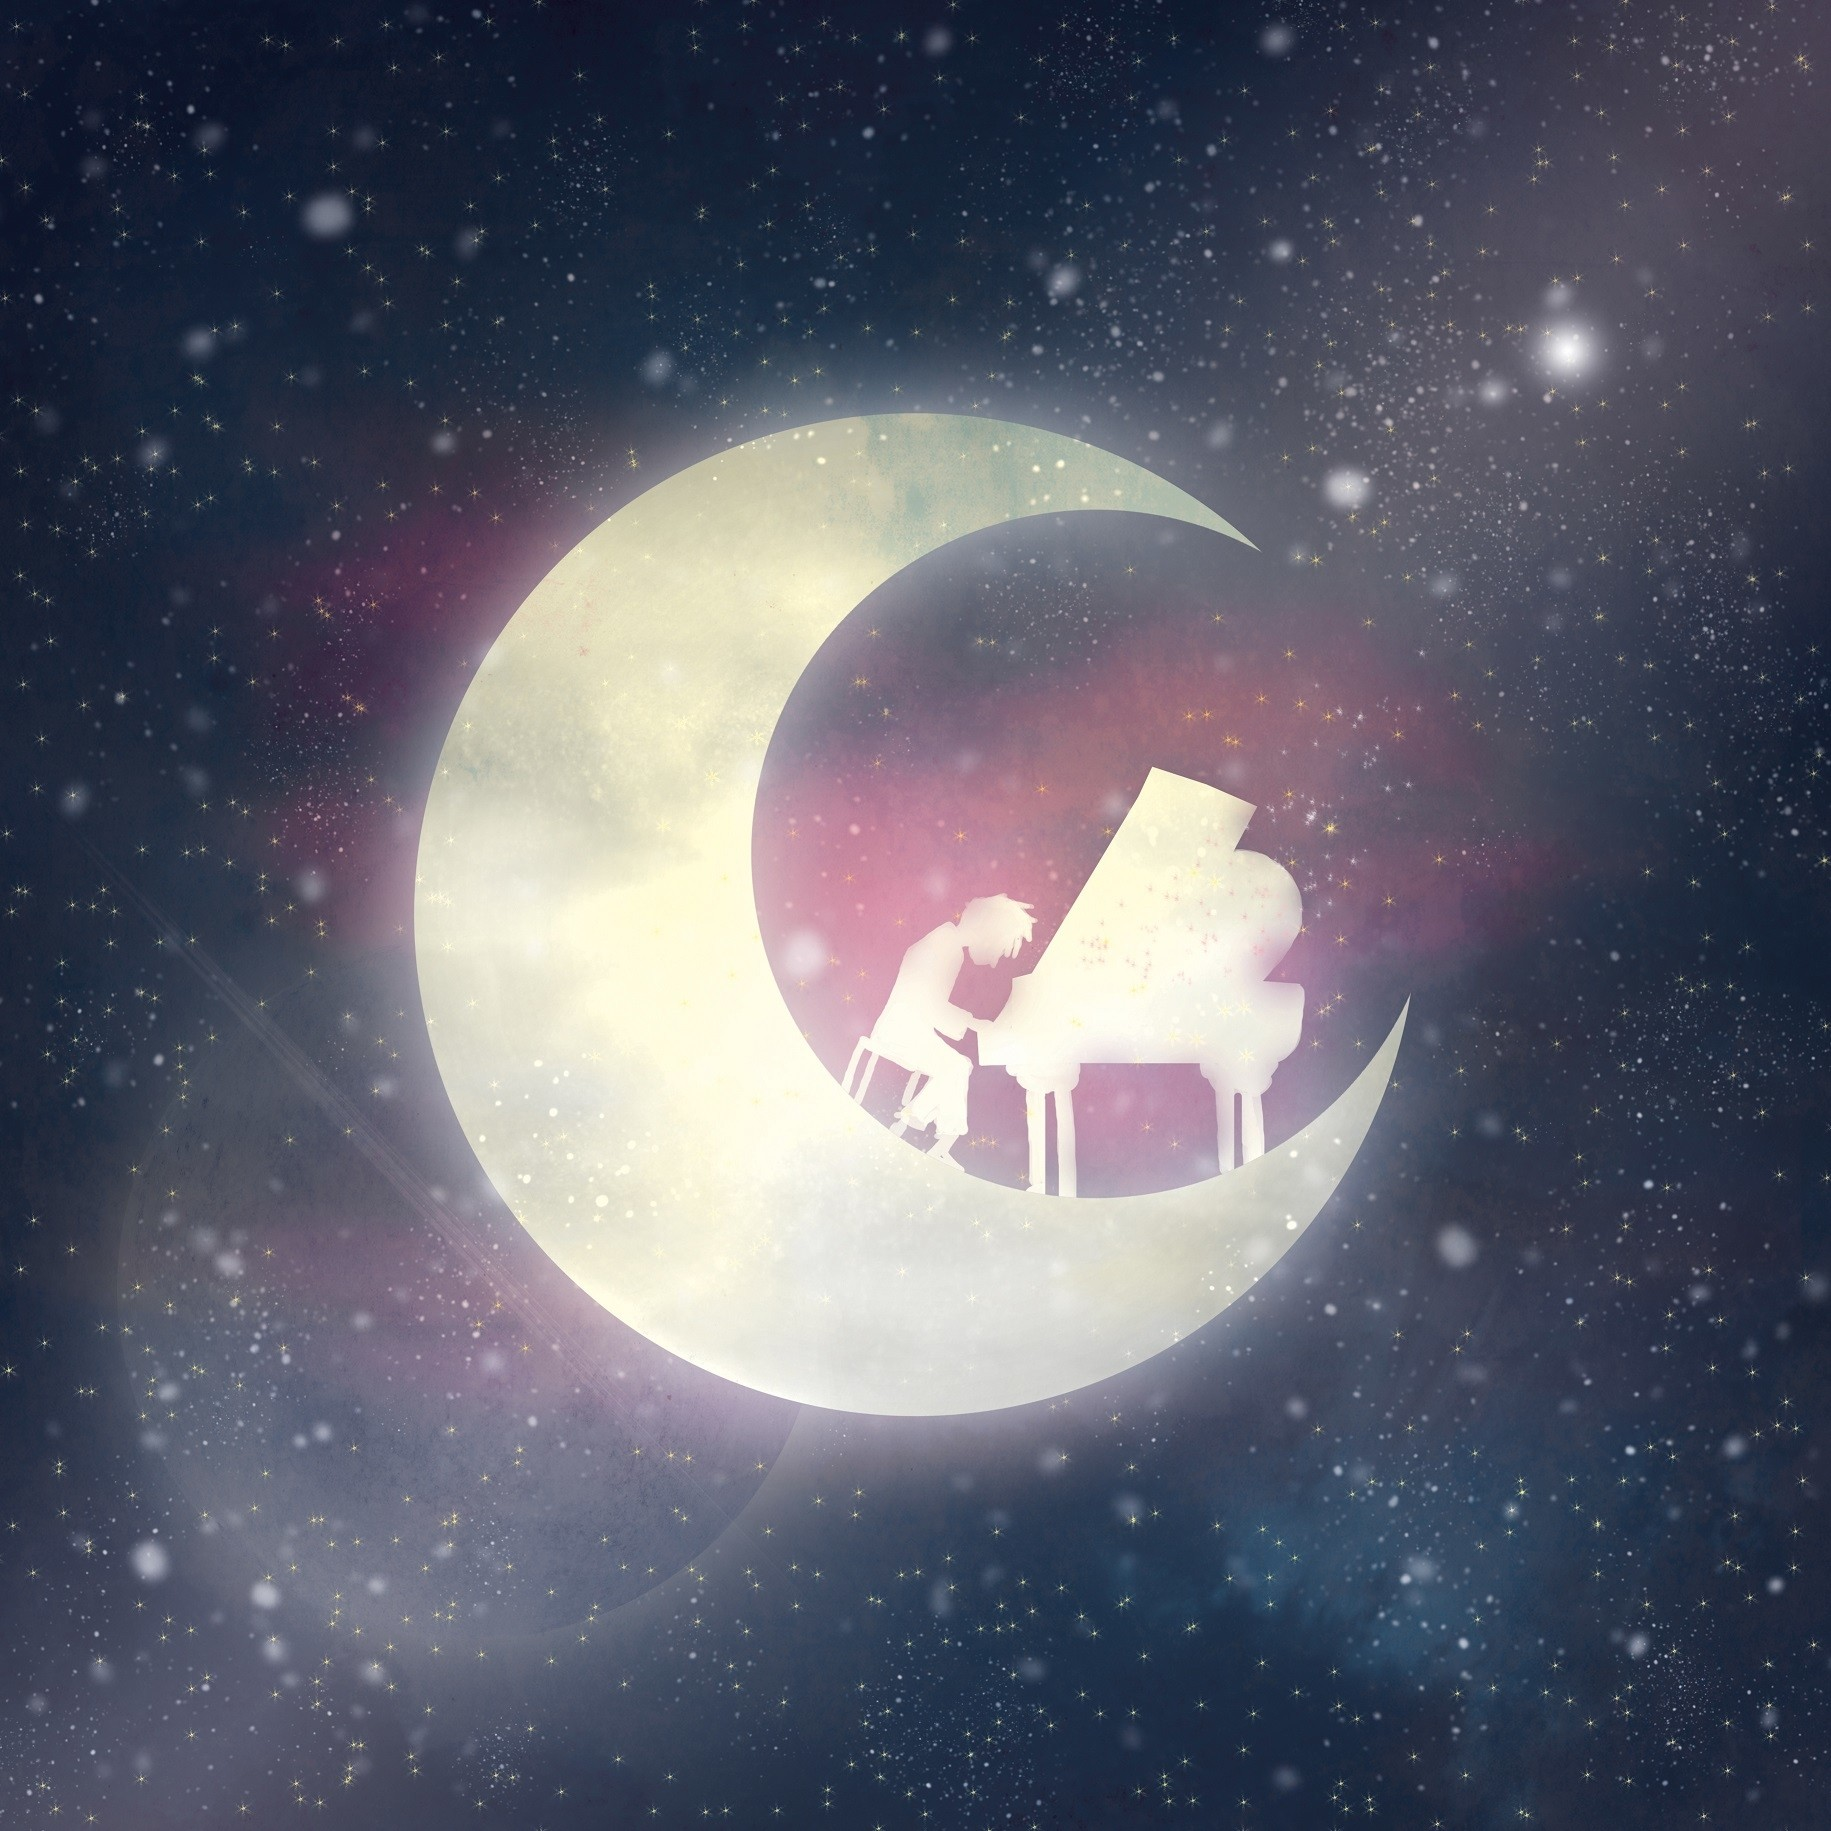 sow-ay-Piano-on-the-moon par Sow